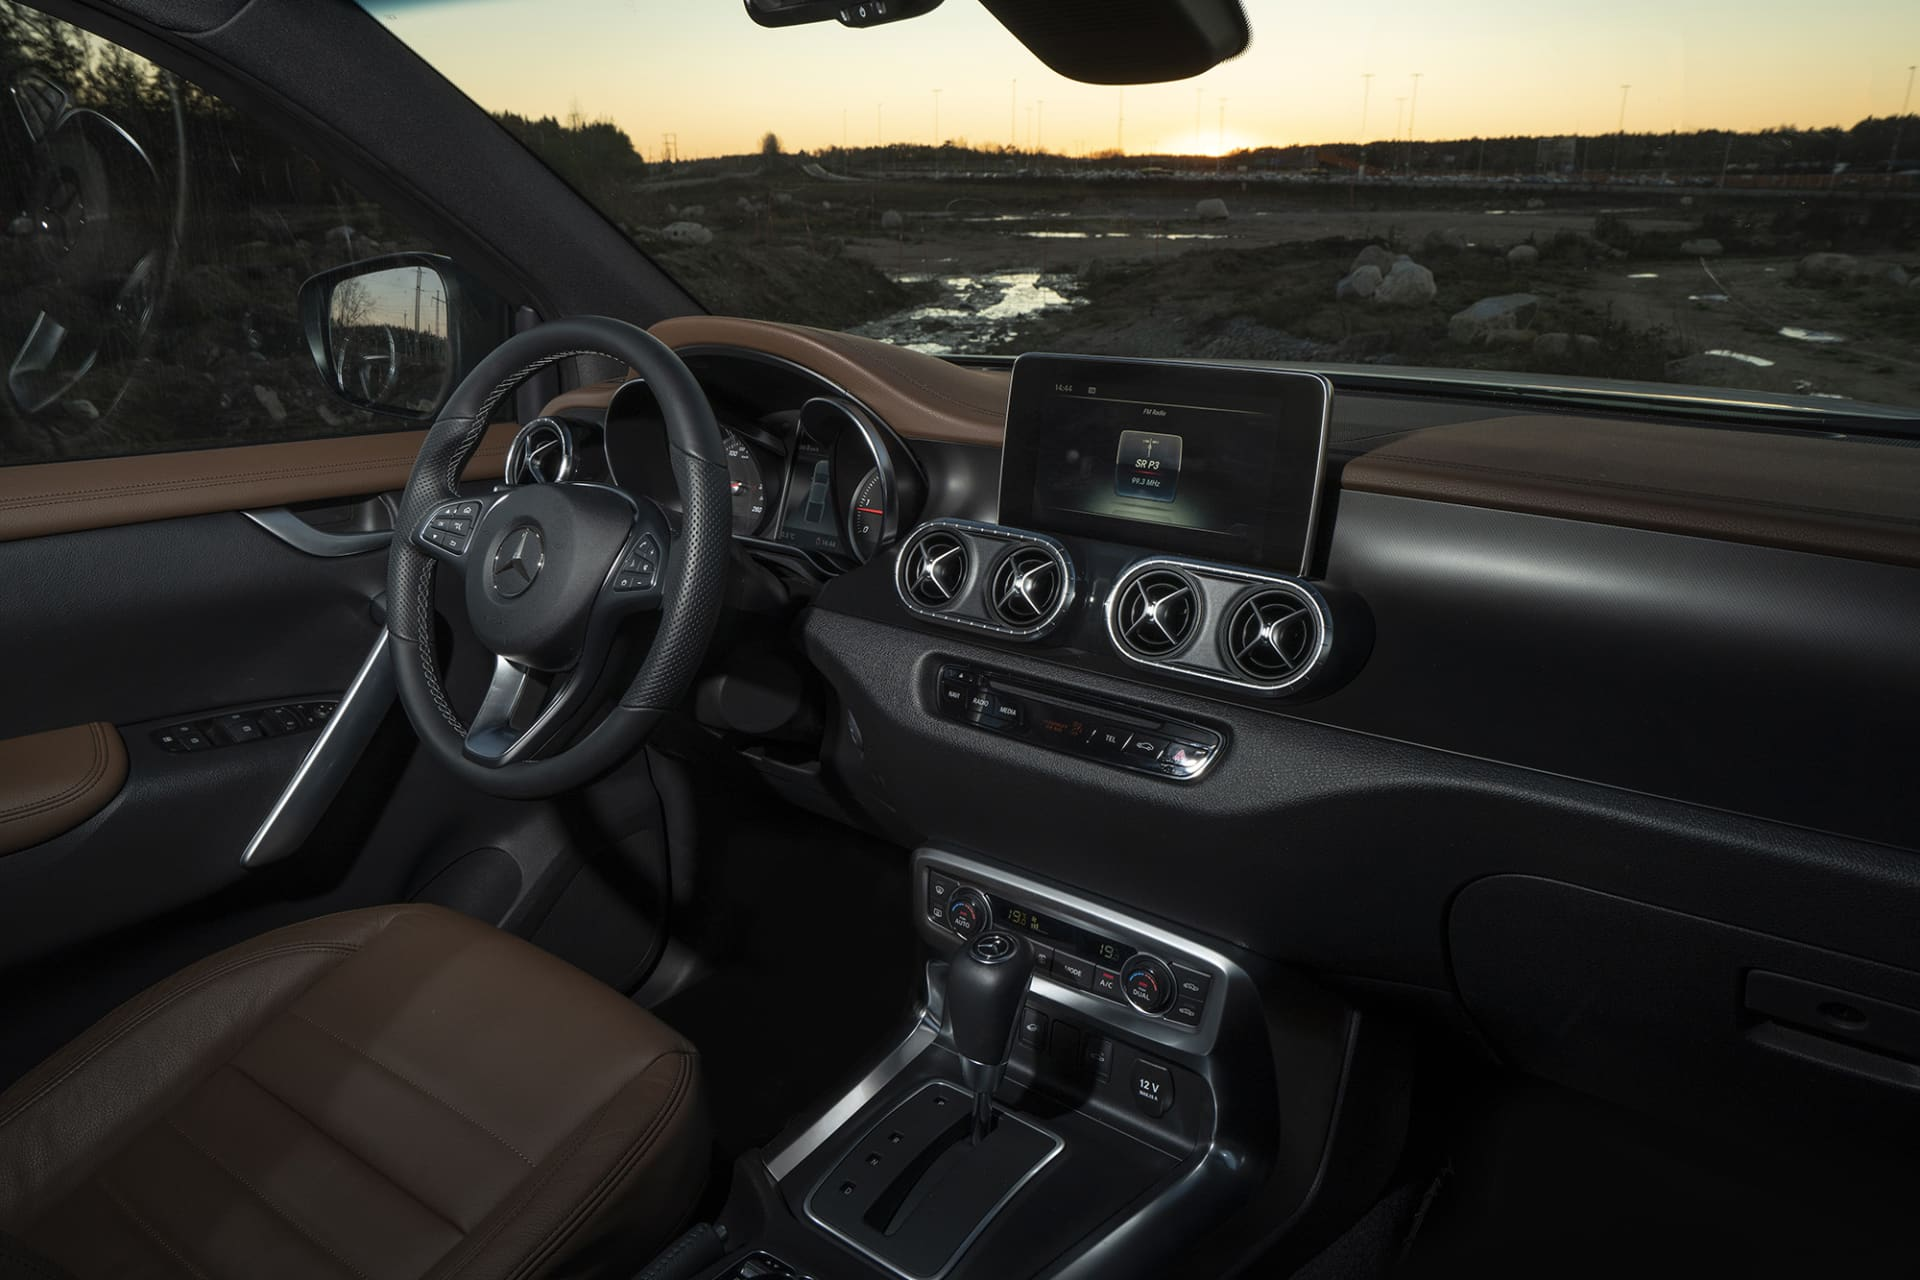 The interior is recognizable from other Mercedes models; the fan exhaust and the screen at the top of the center console come to mind. One of the few disadvantages with the X-Class is that you cannot get Apple CarPlay at the time of this writing.